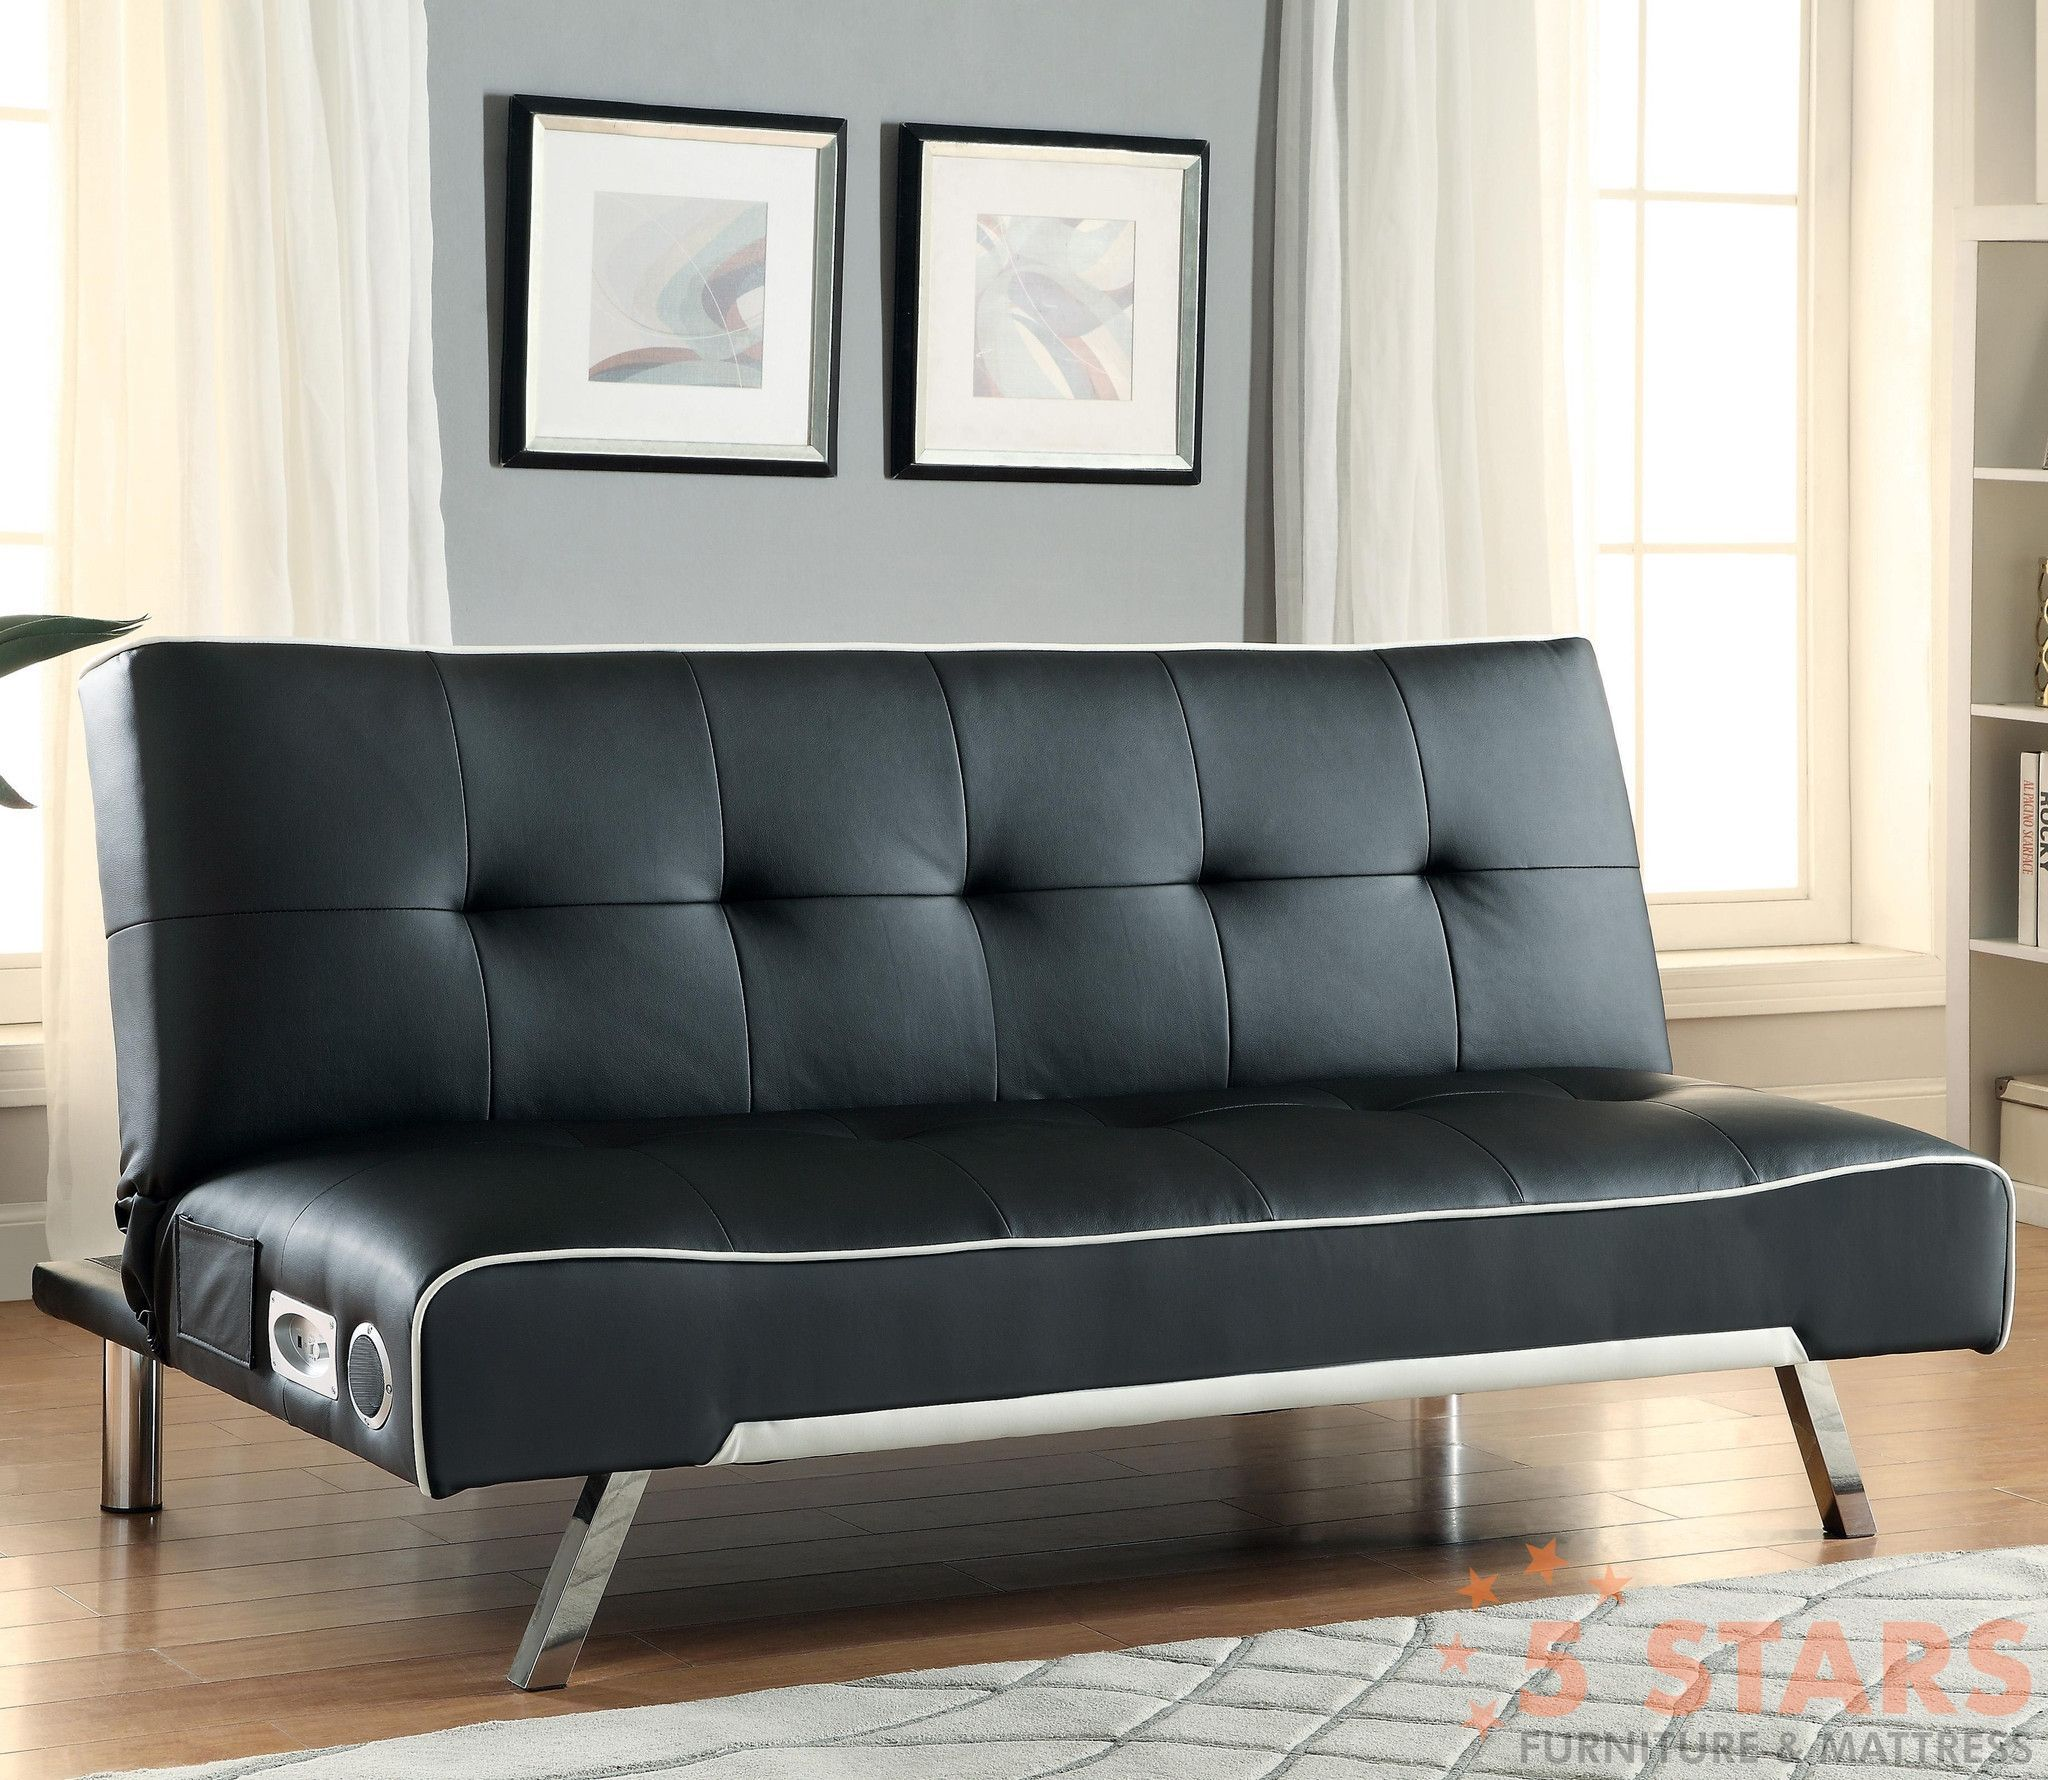 sofa beds and futons - sofa bed with built-in bluetooth speakers